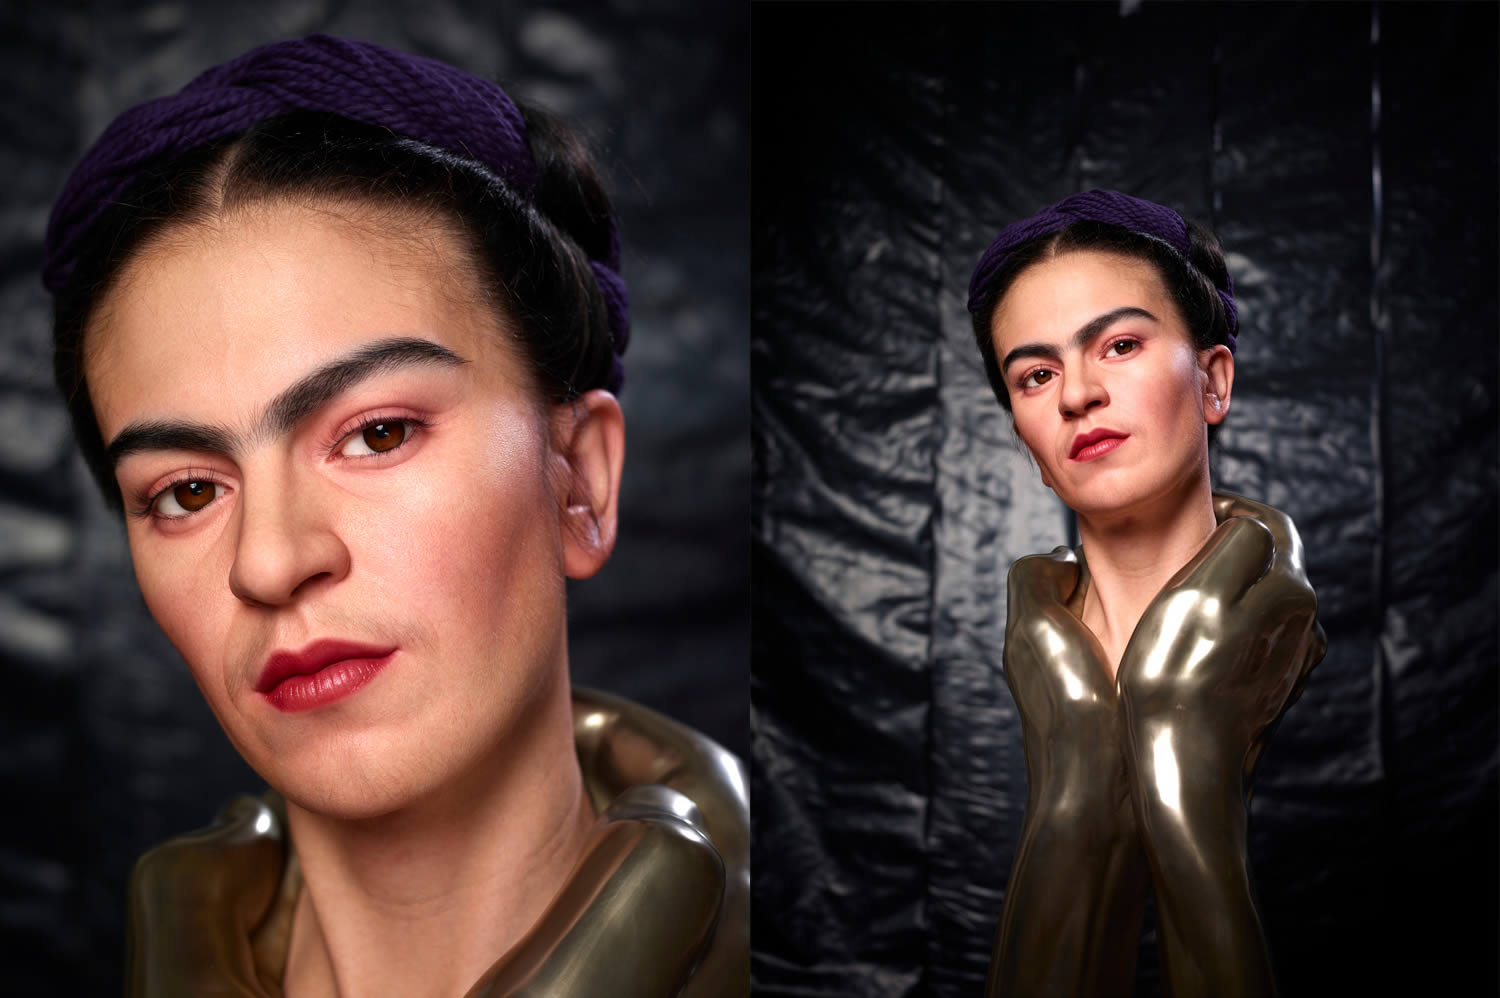 Frida Khalo sculptures, hyperrealism